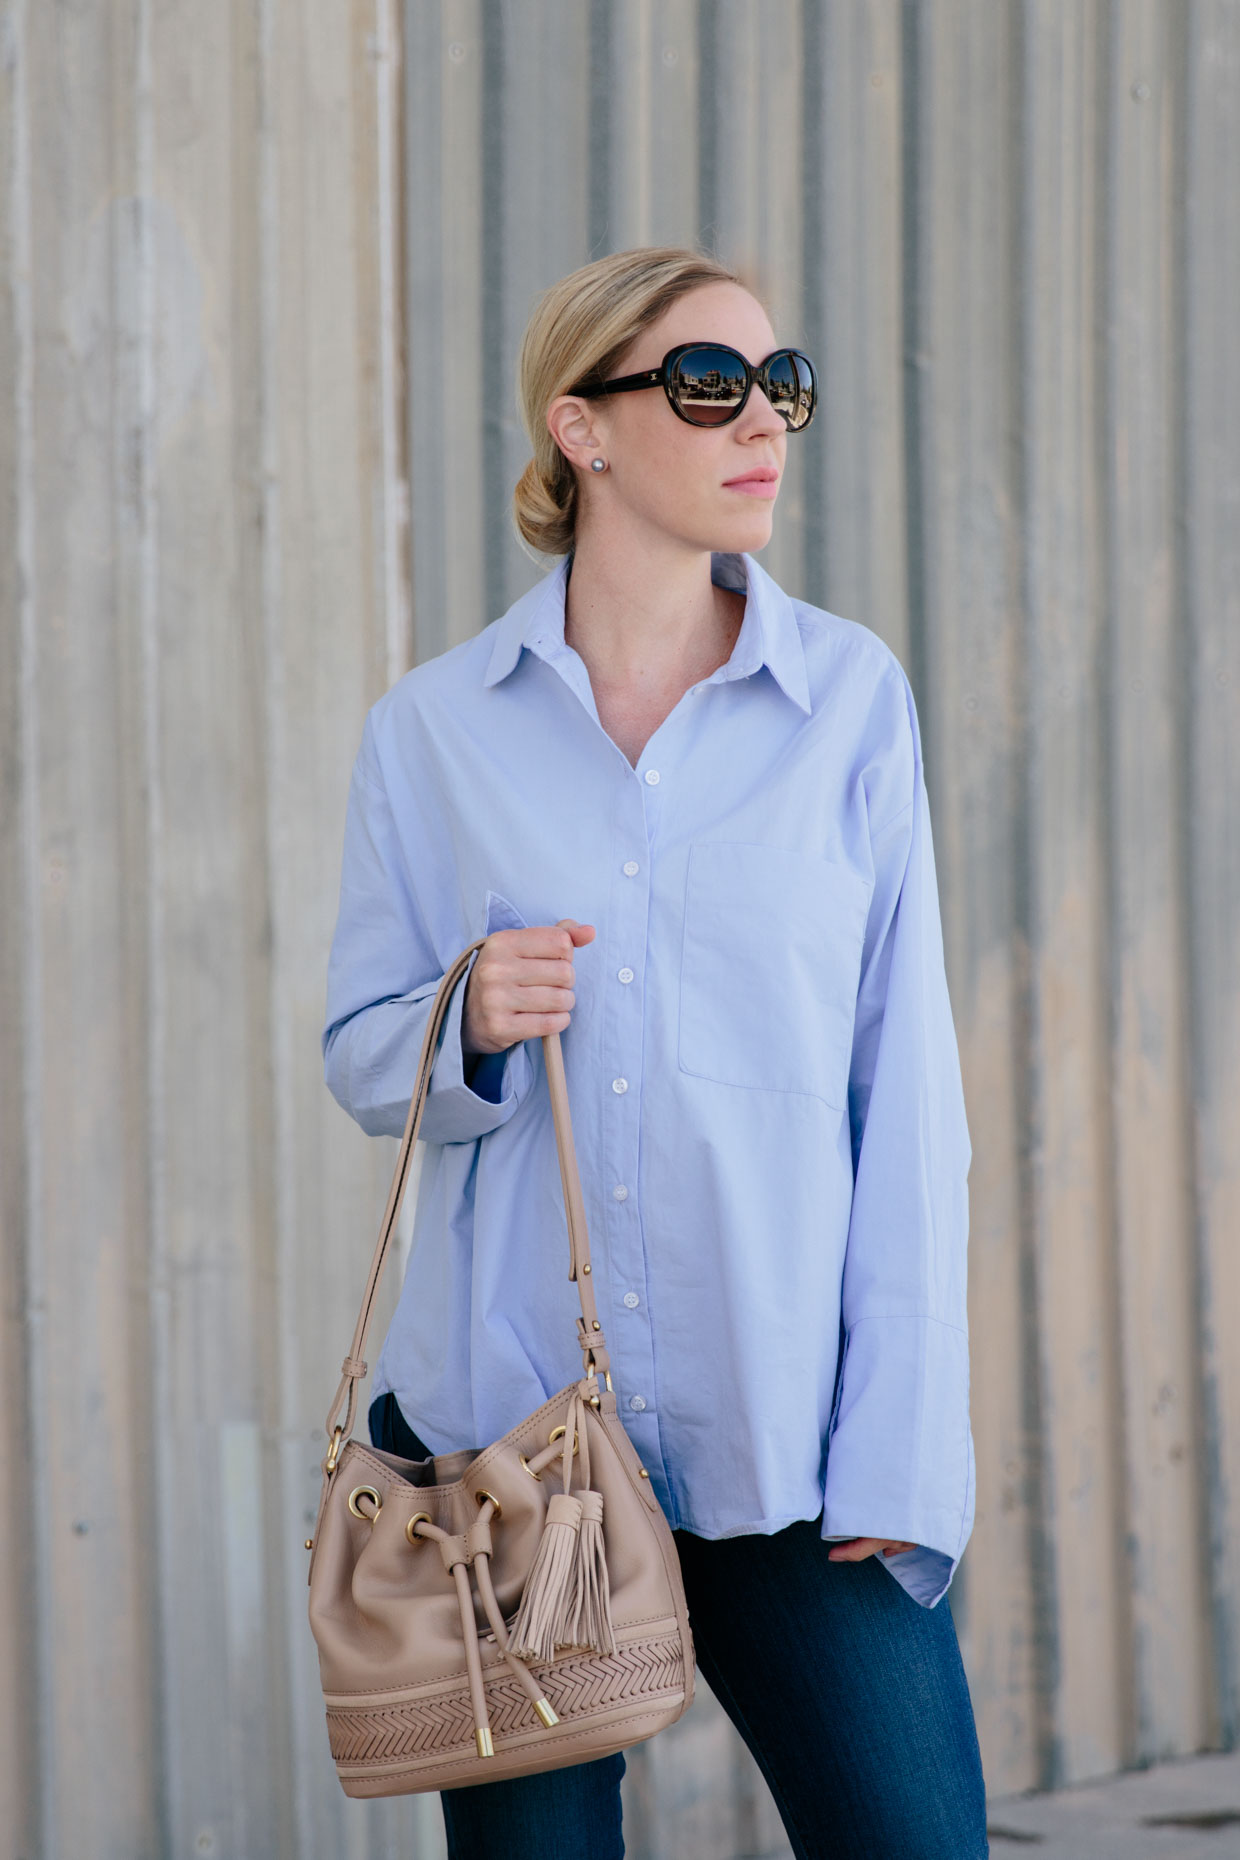 The Best Type of Non-Maternity Shirt to Wear During ...